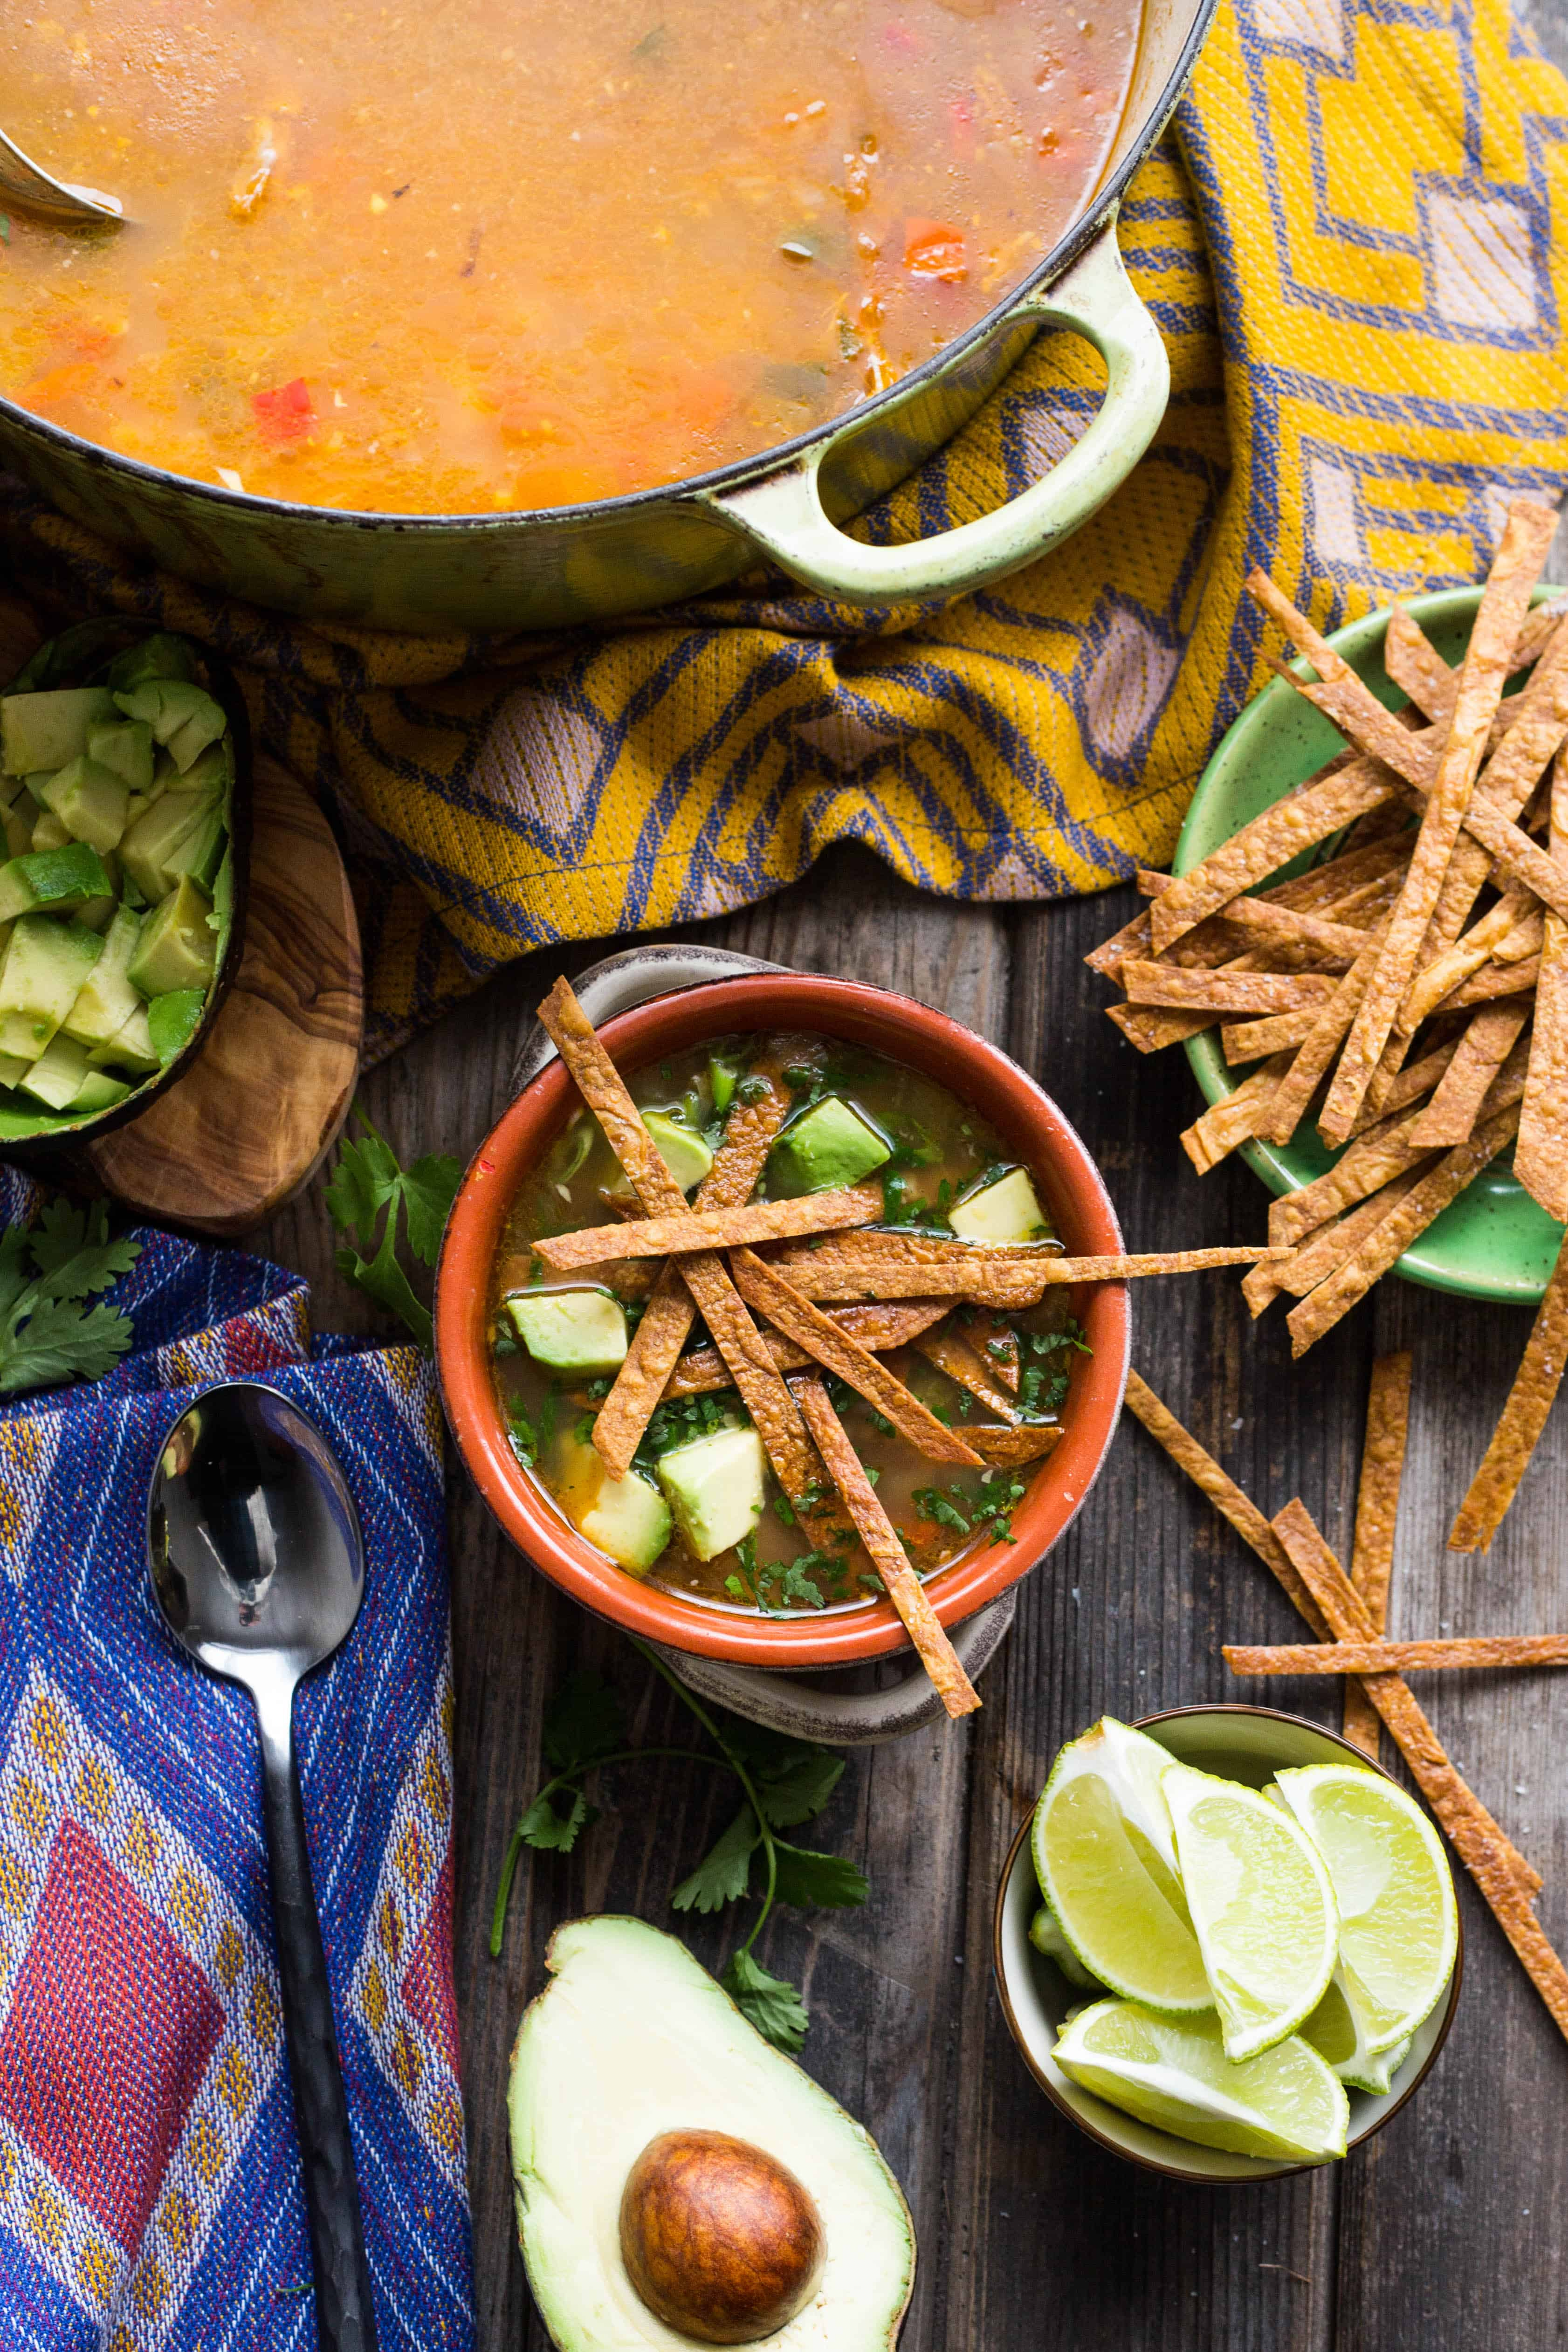 Top view of a red earthenware bowl of tortilla soup topped with diced avocado and fried tortilla strips.